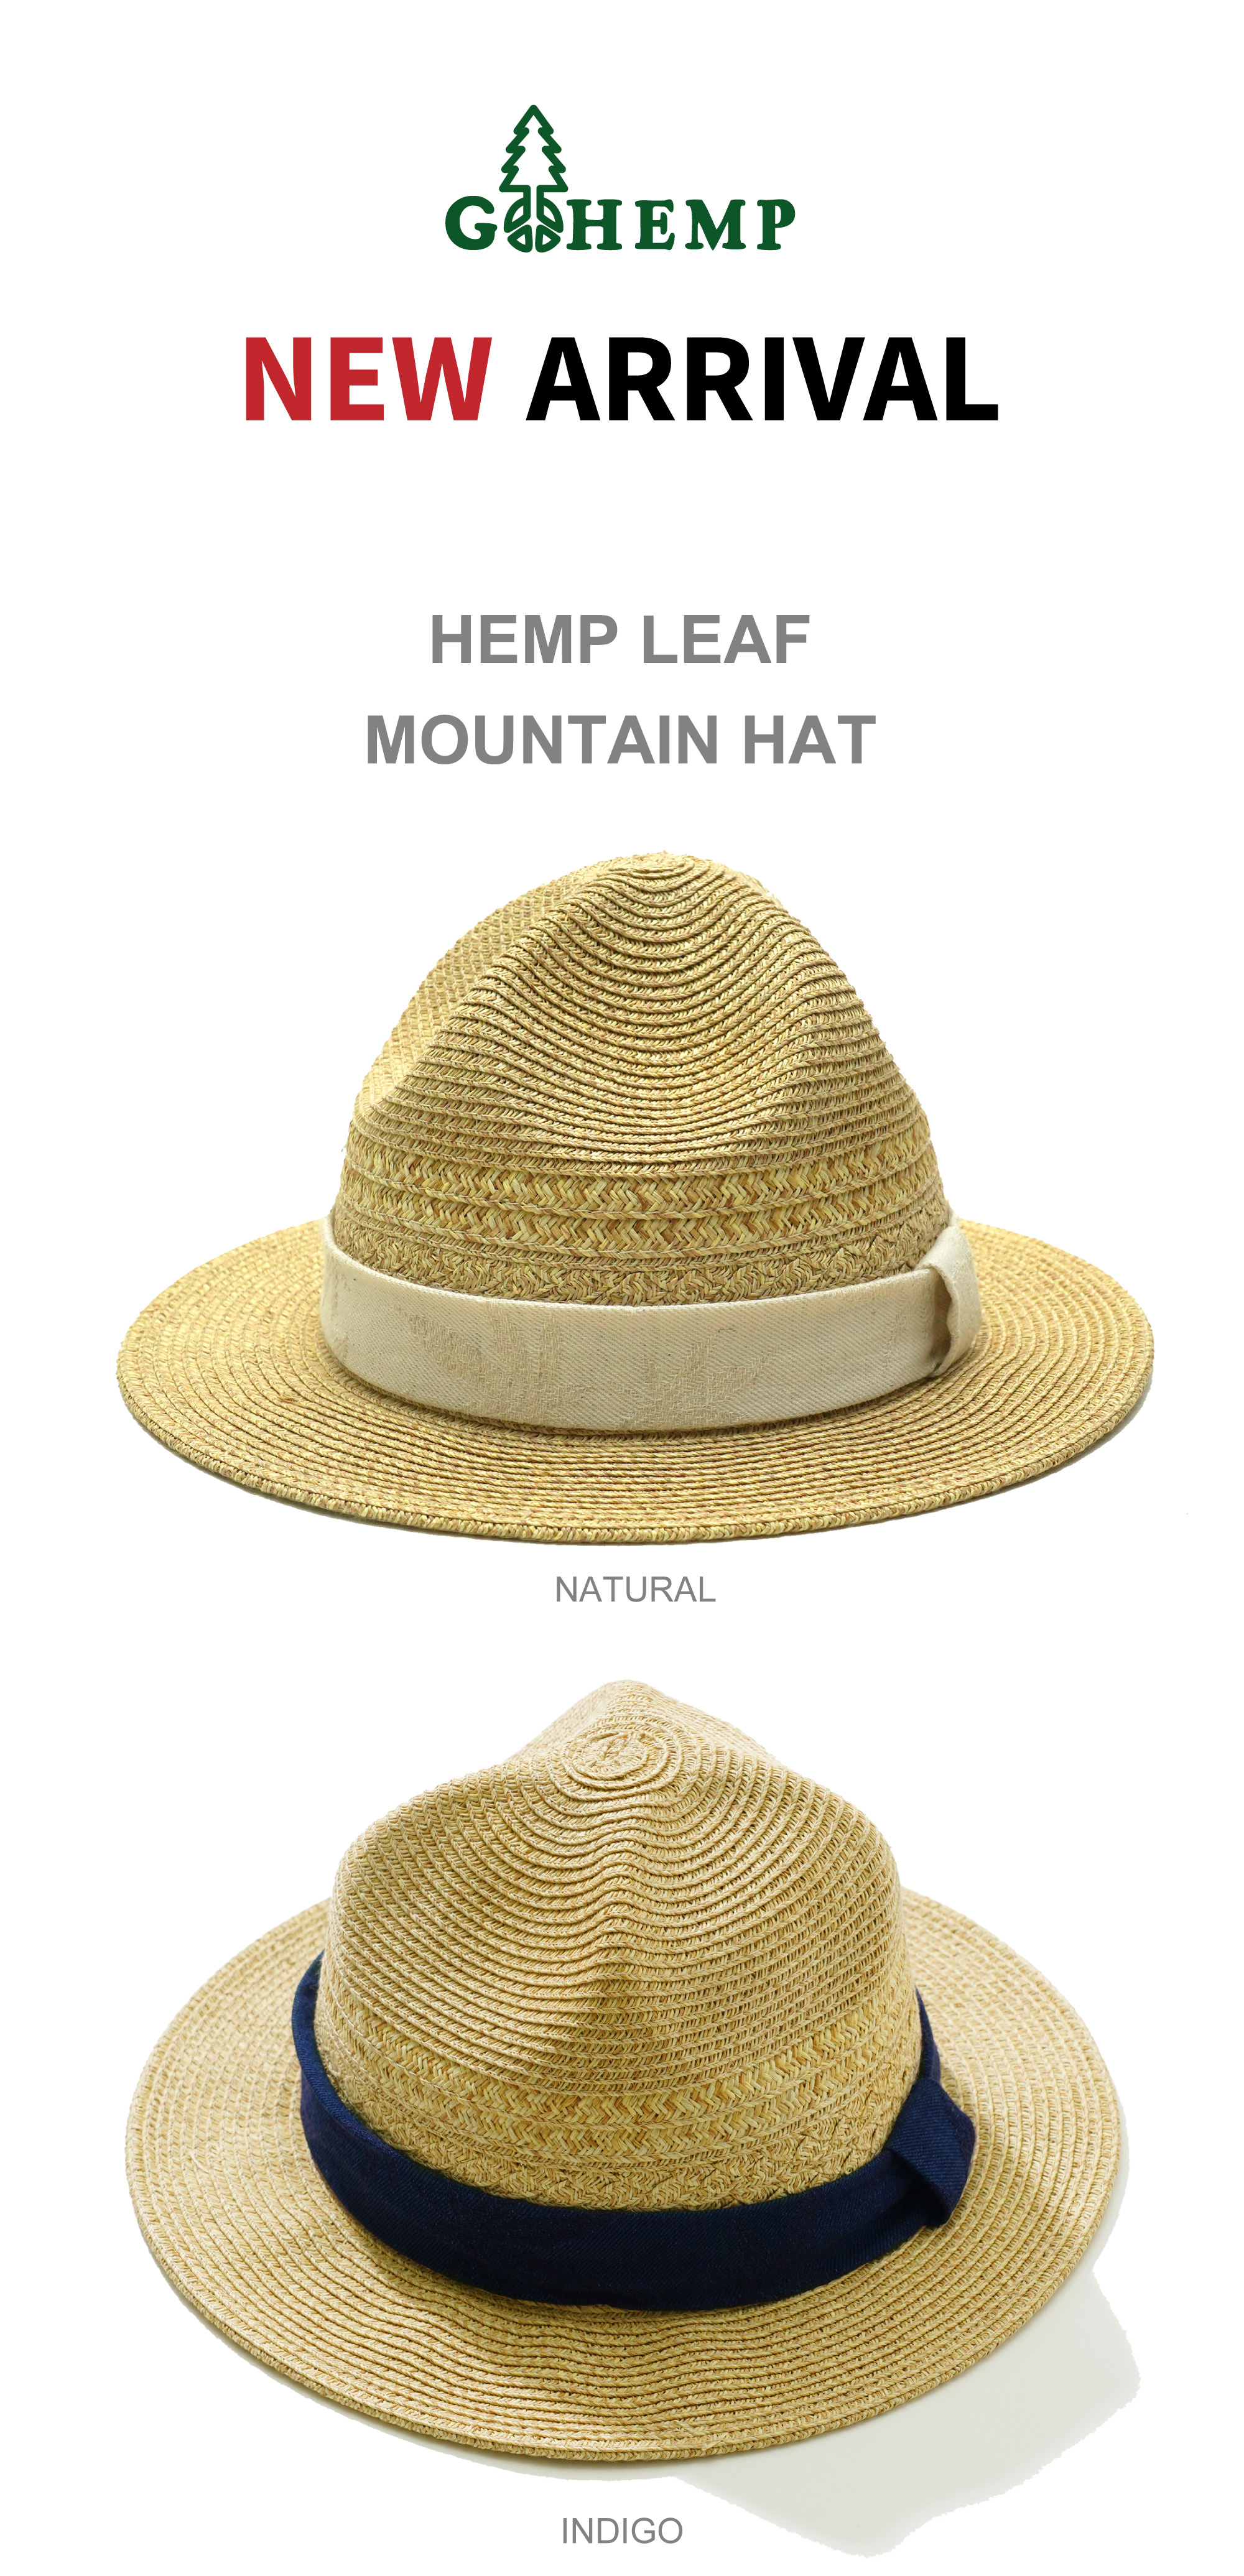 【GOHEMP】HEMP LEAF MOUNTAIN HATを入荷しました